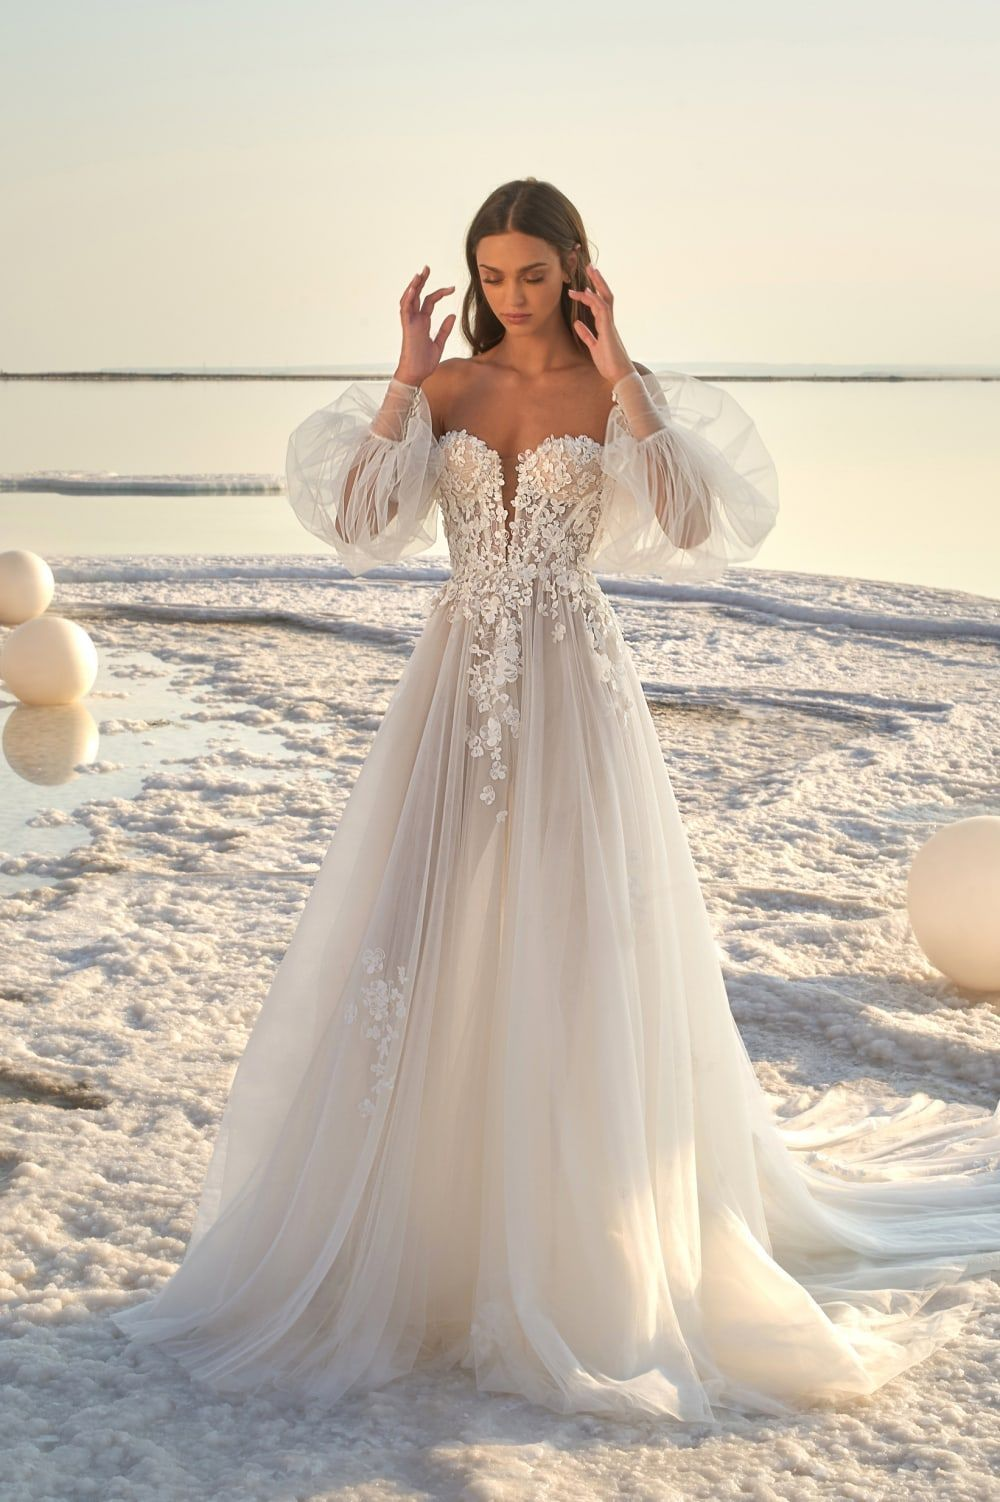 Lee Petra Grebenau Bridal Gown with Sleeves #weddingdresses